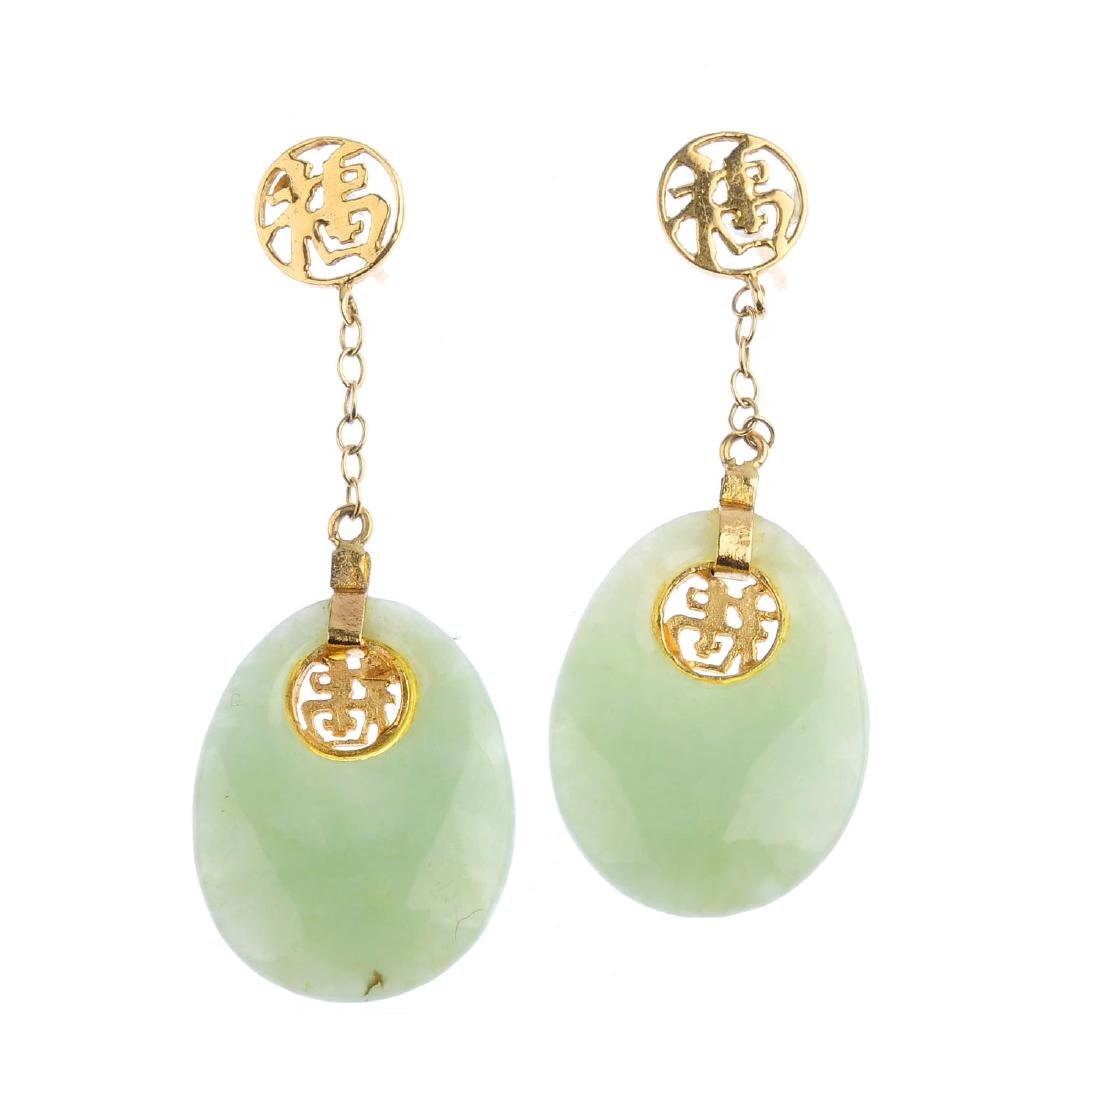 Two pairs of jade earrings. To include a pair of oval